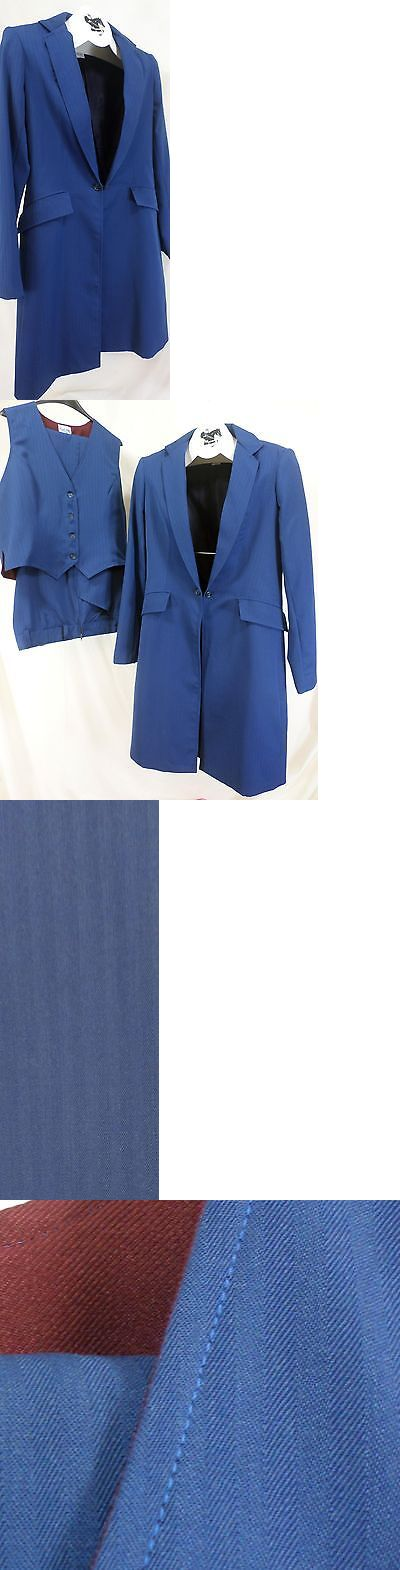 Other English Tack 3155: Reed Hill Saddleseat Ld 3P Suit Bright Navy Tone On Tone Poly Size 12 - Usa -> BUY IT NOW ONLY: $500 on eBay!